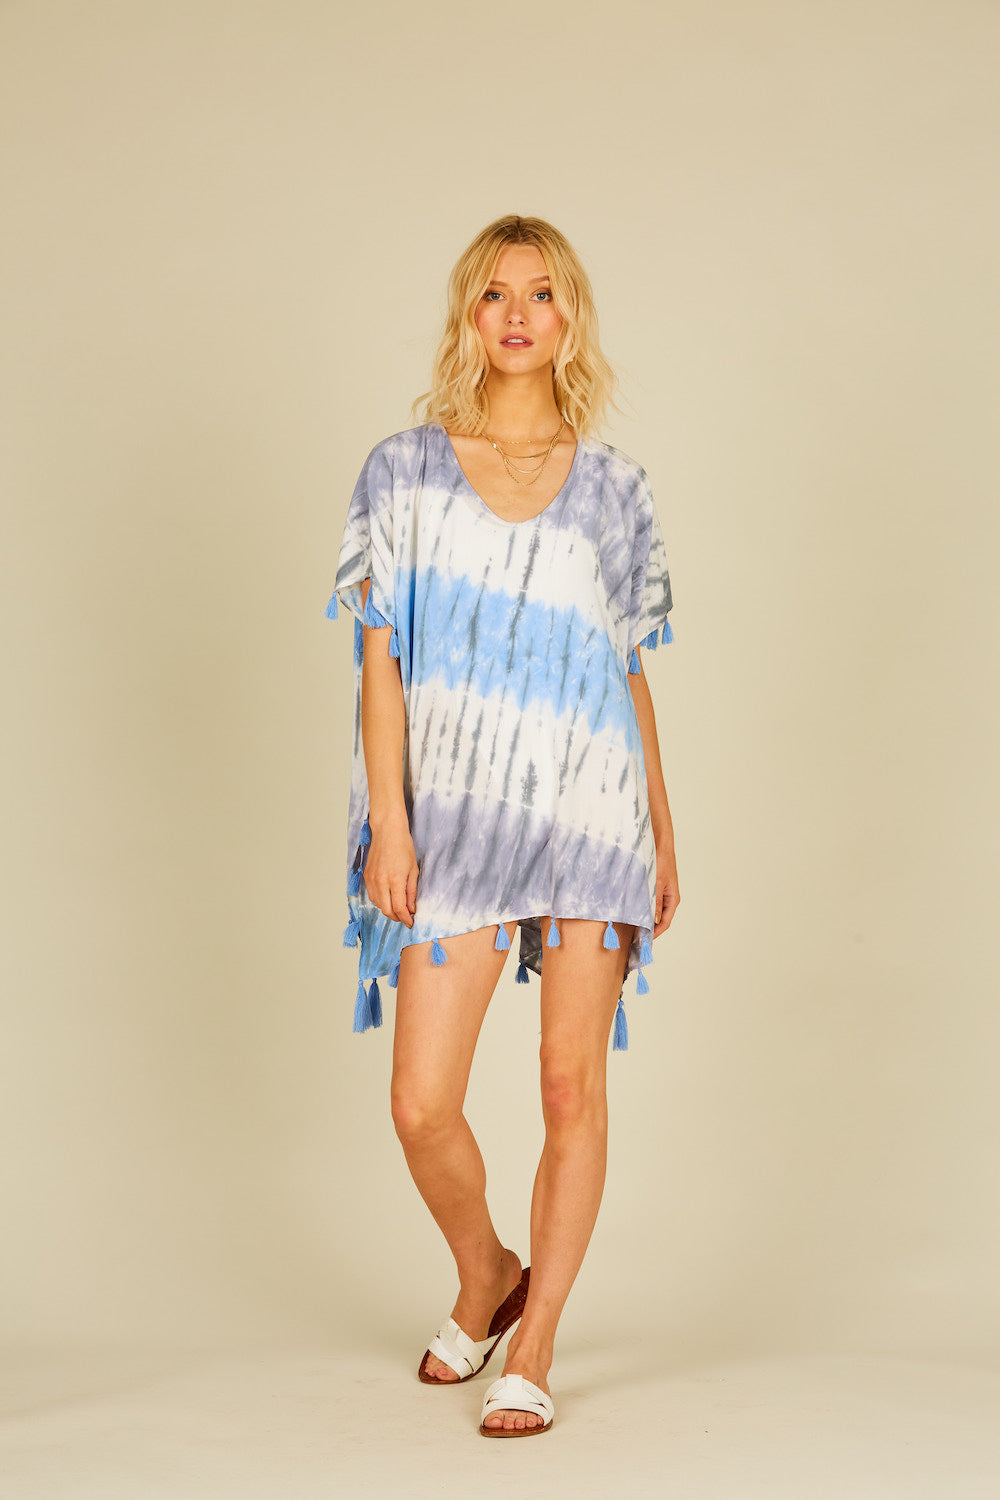 Seaside Diagonal Tie Dye CoverUp